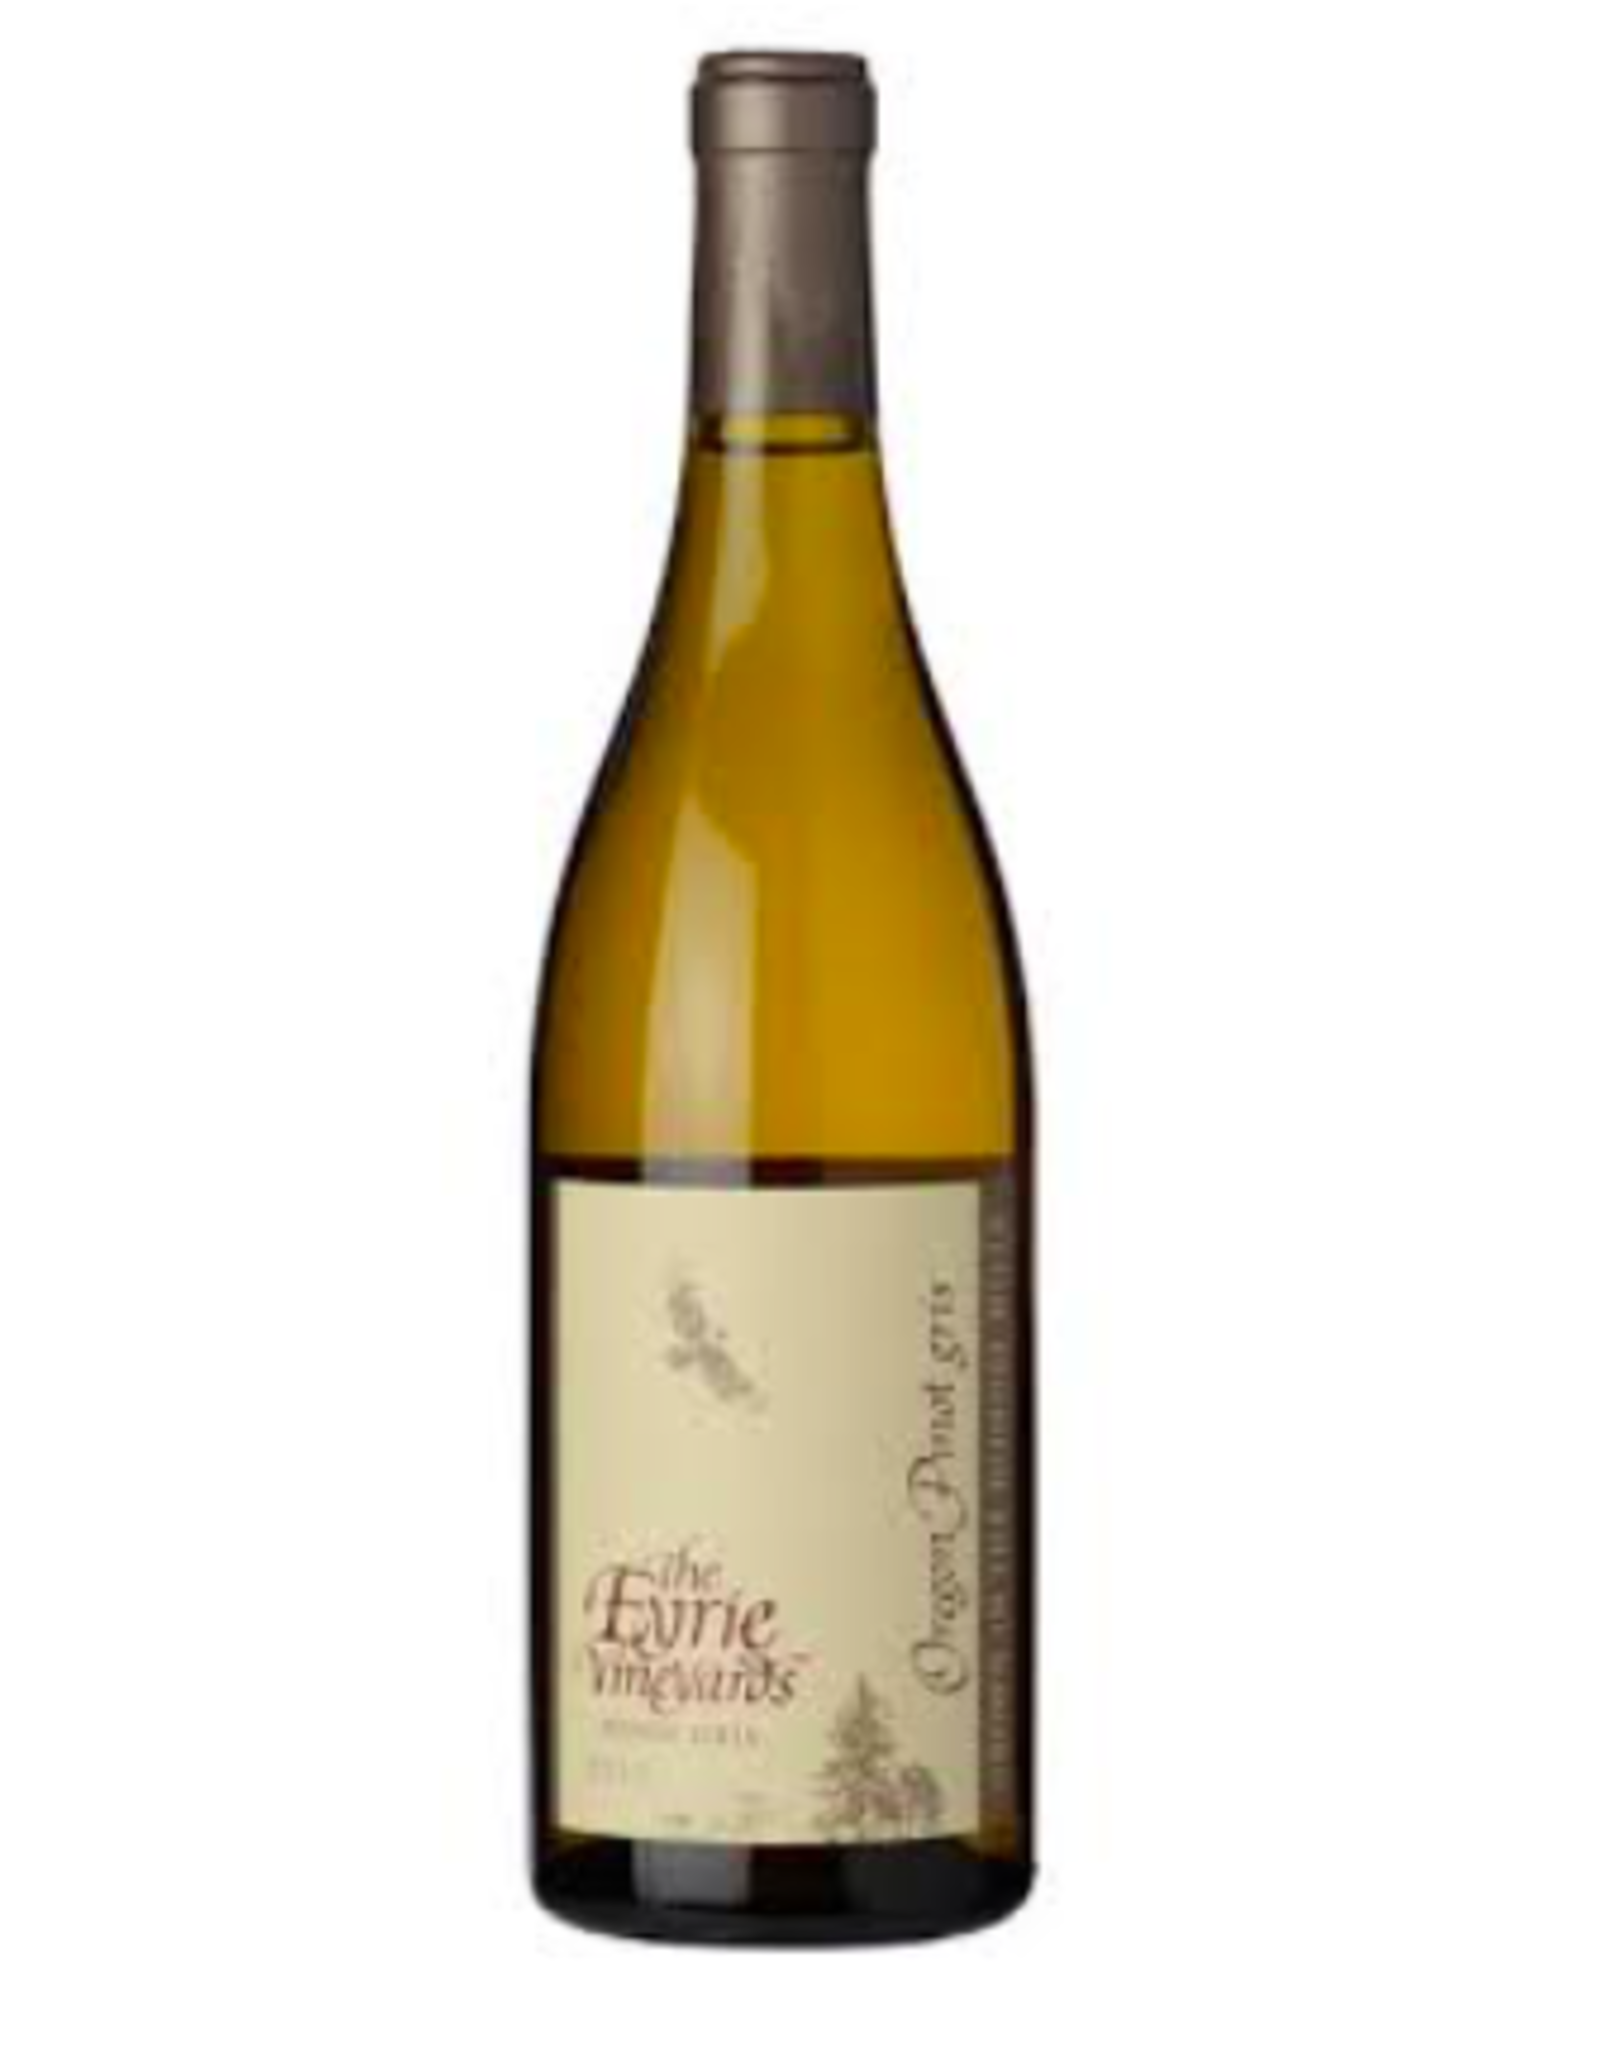 Eyrie Pinot Gris Willamette Valley 2018